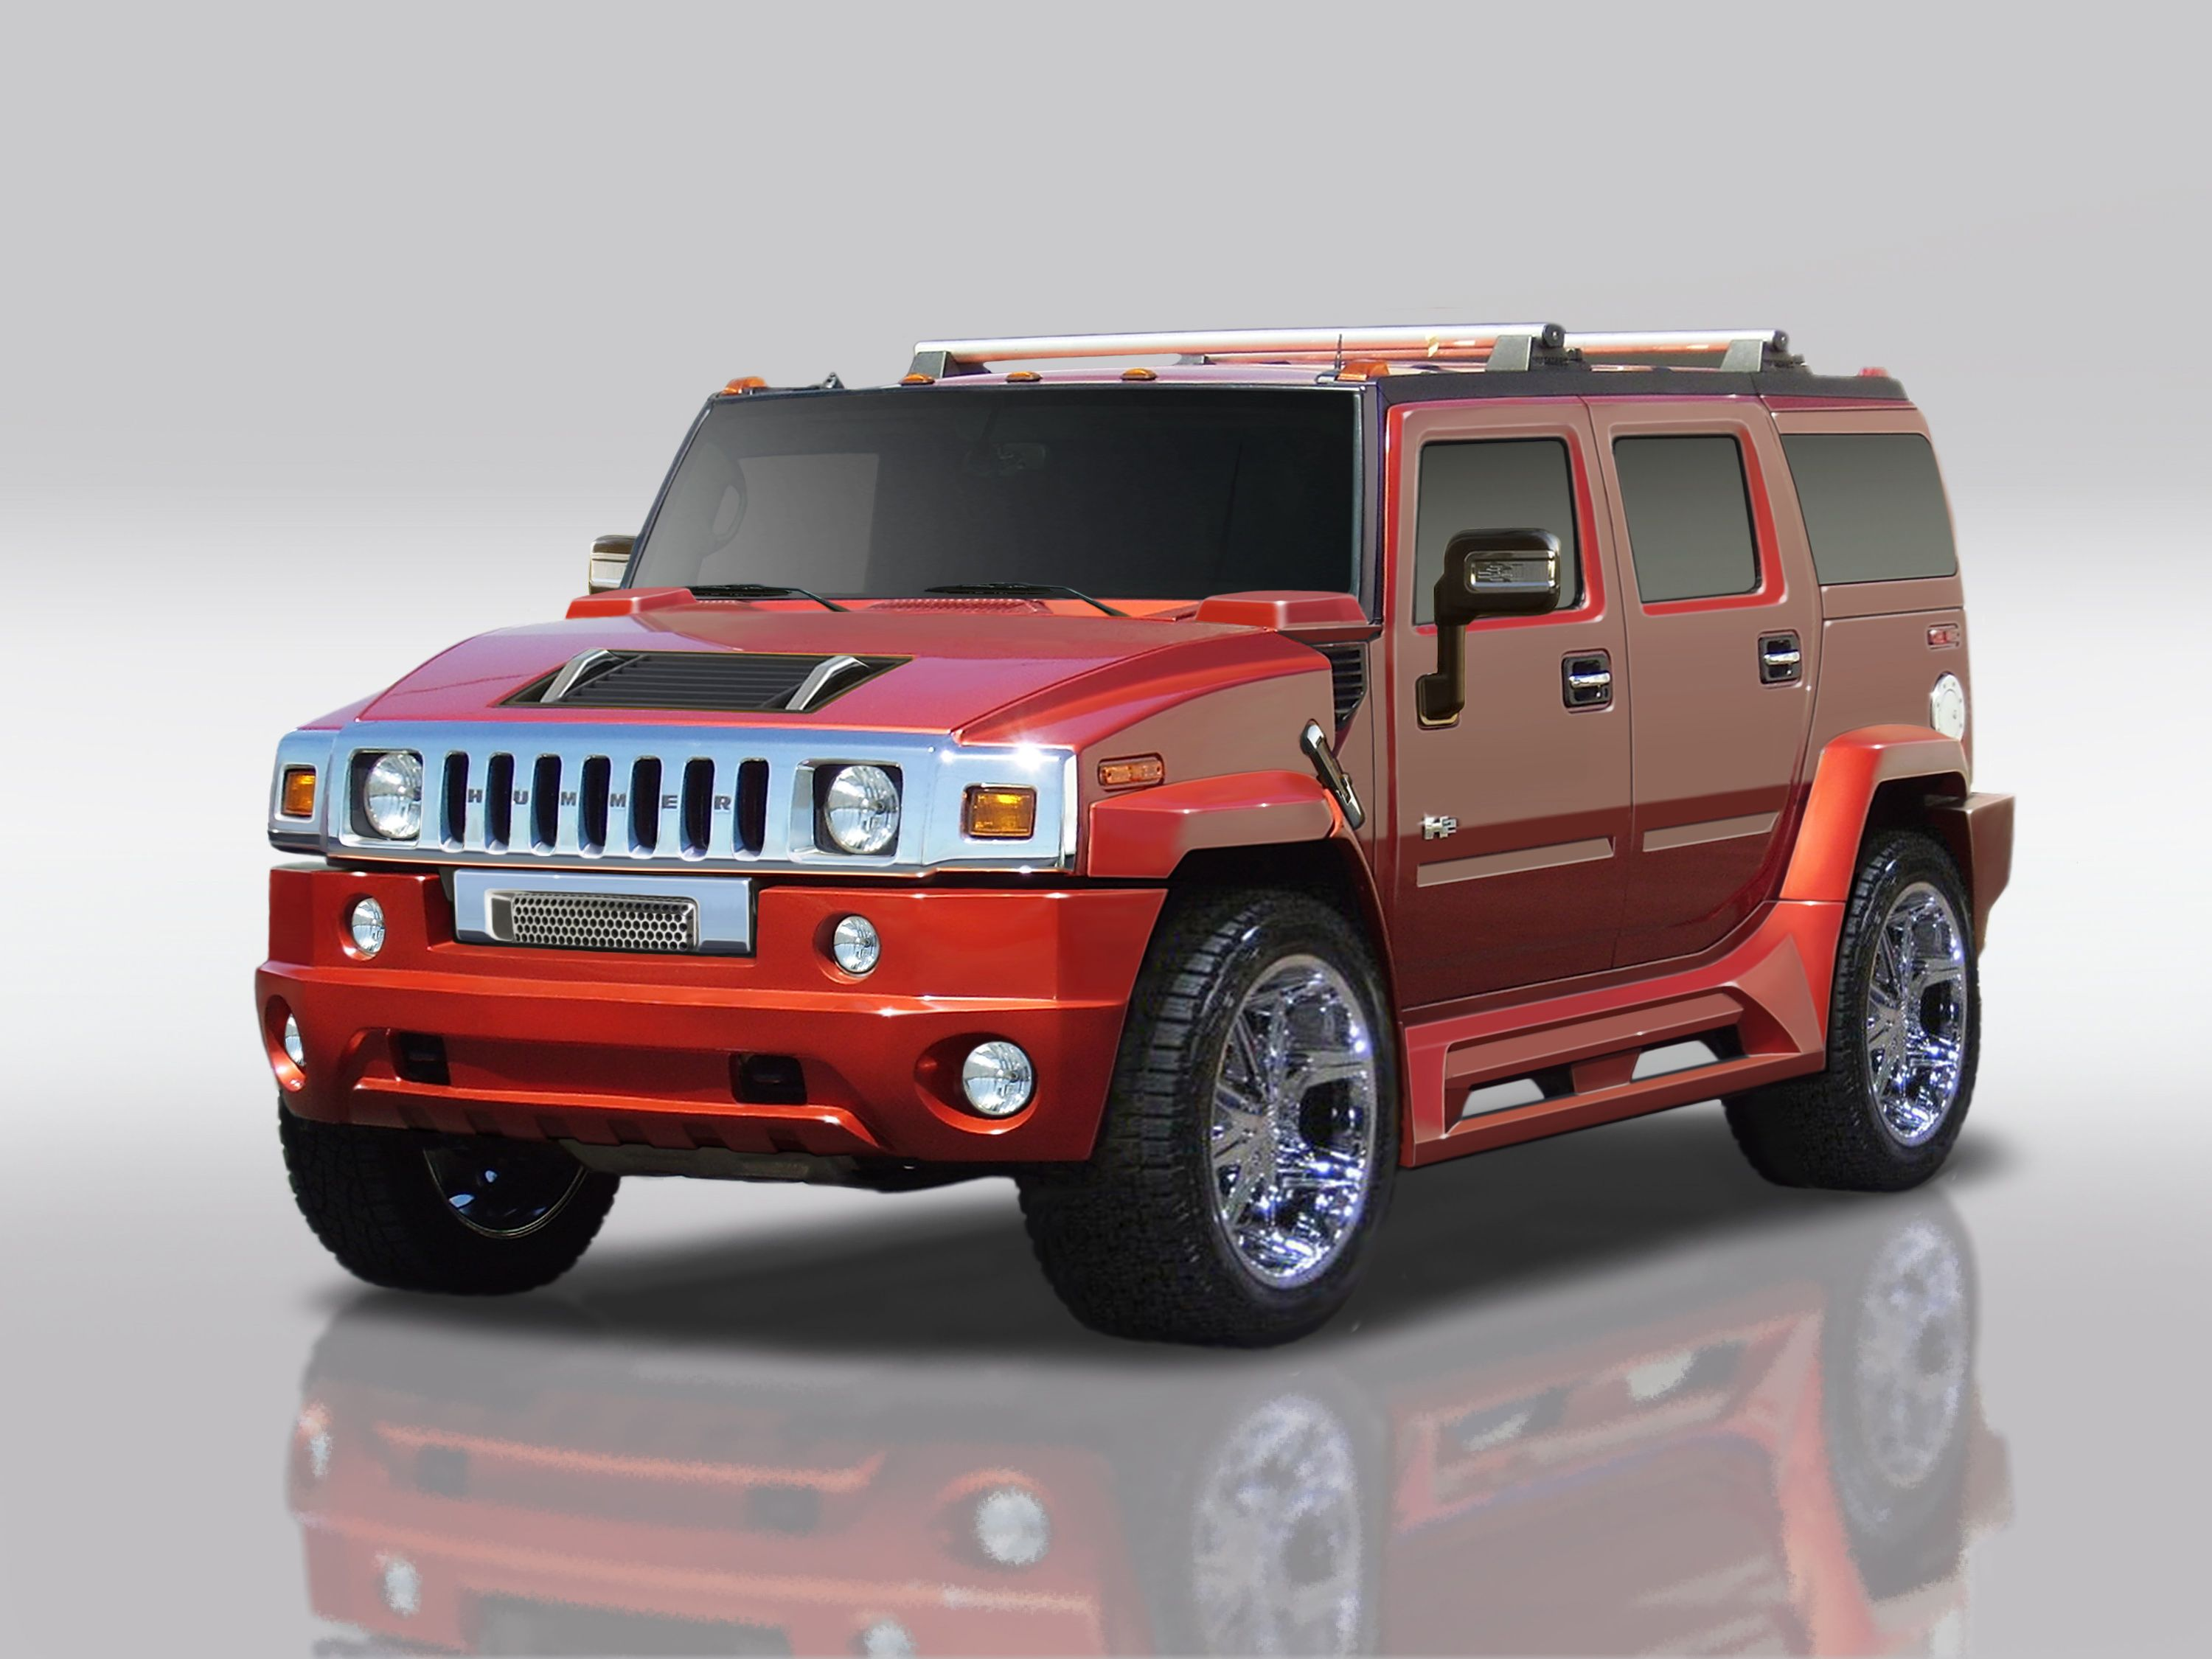 Hummer H2 Lifted Red Hummer H2 Red Wallpaper Hummer H2 Hummer Hummer Cars